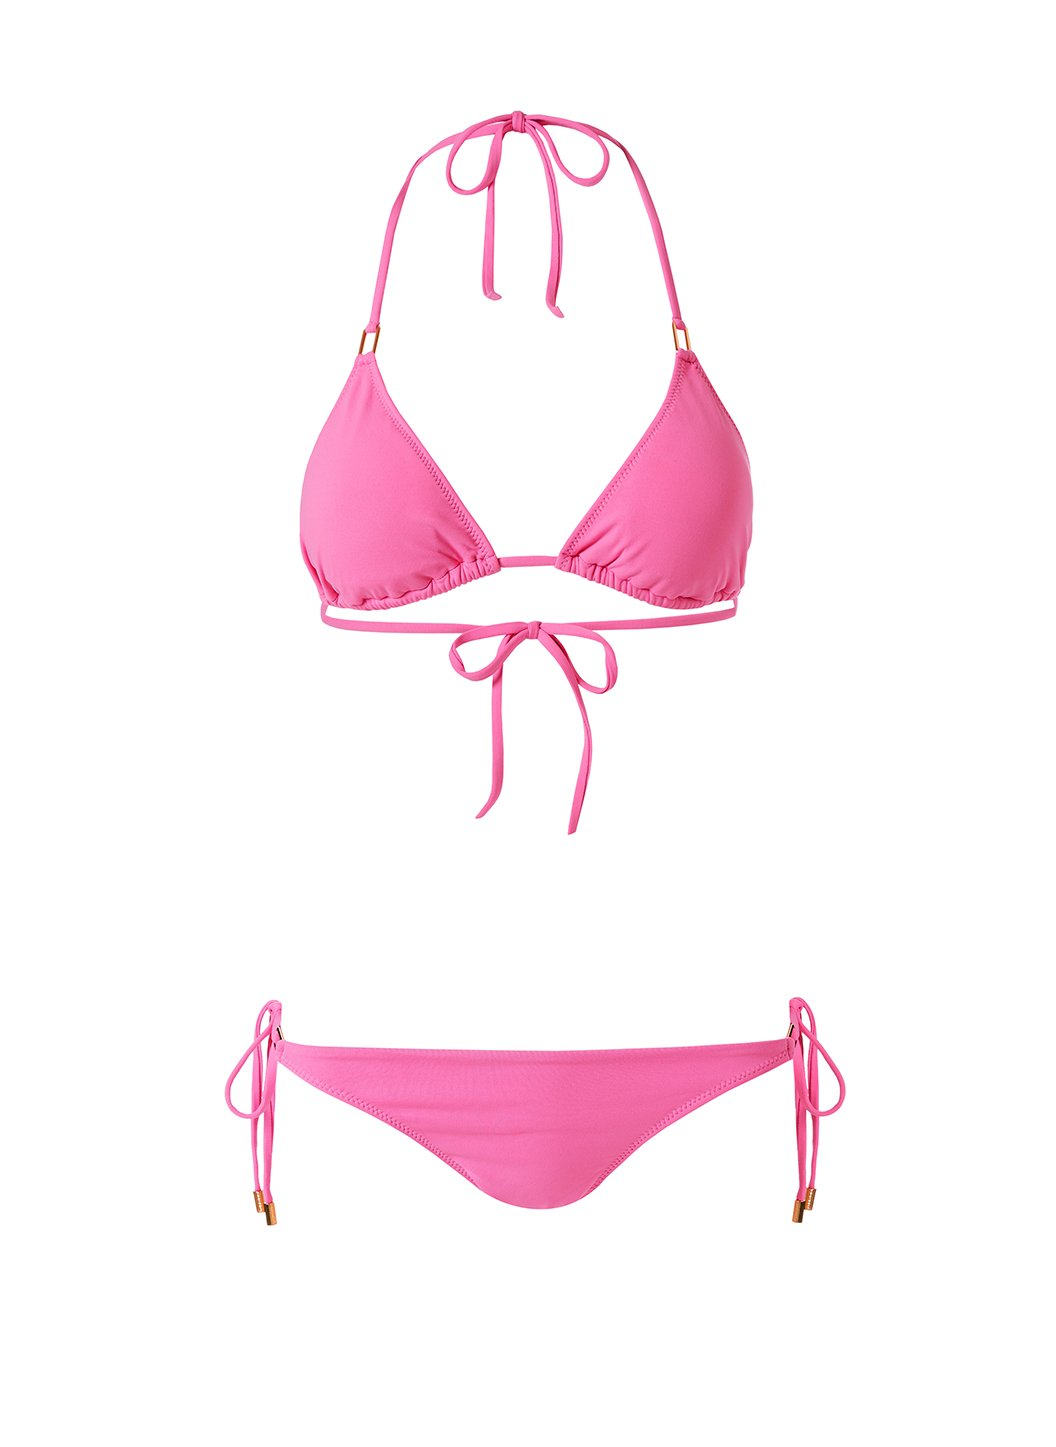 Cancun Flamingo Bikini Cutout